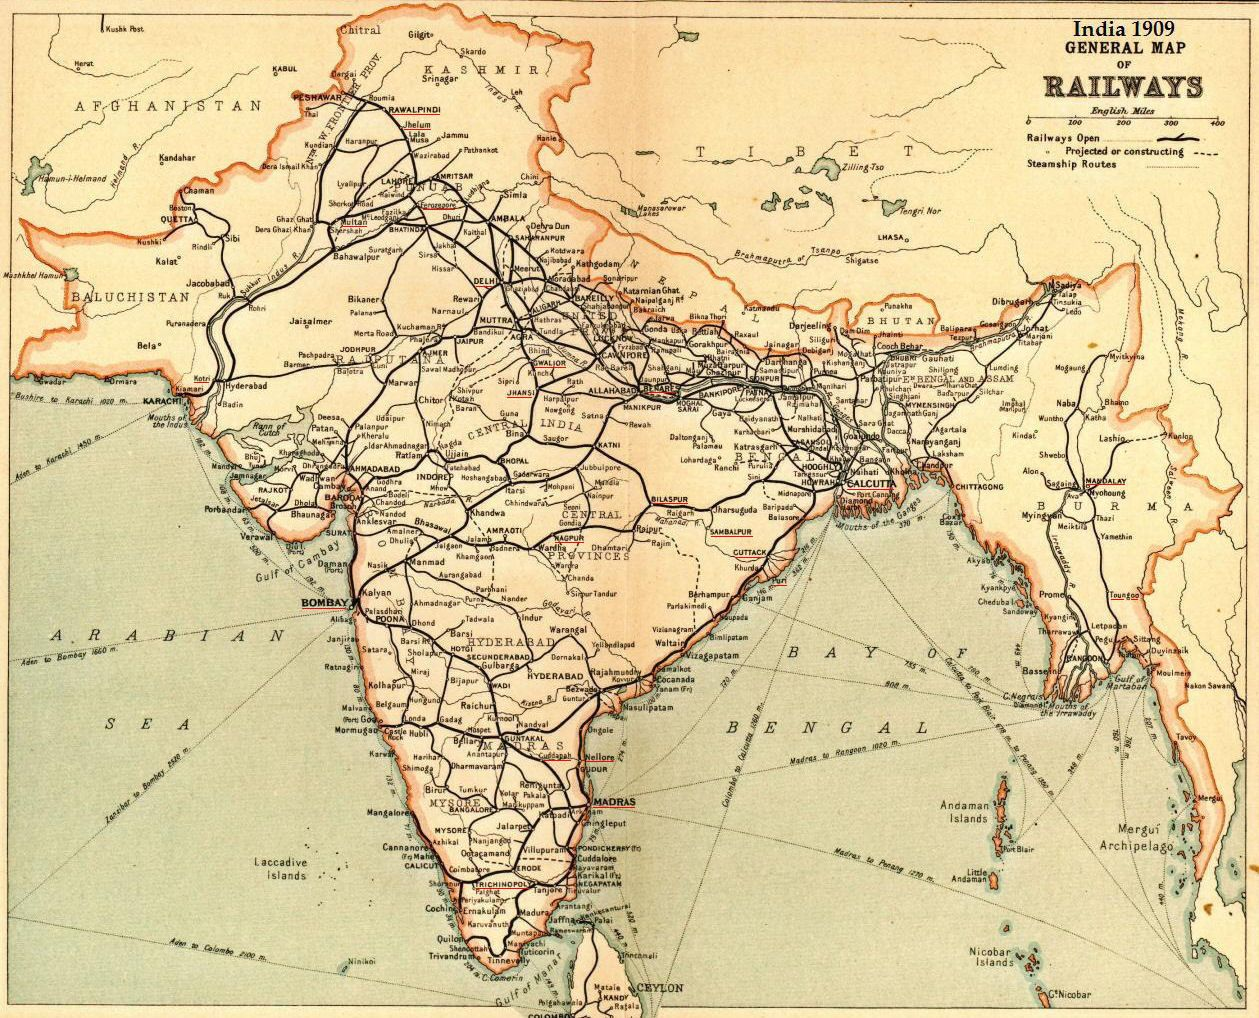 Railway Map of India 1909 cARTography Pinterest India History